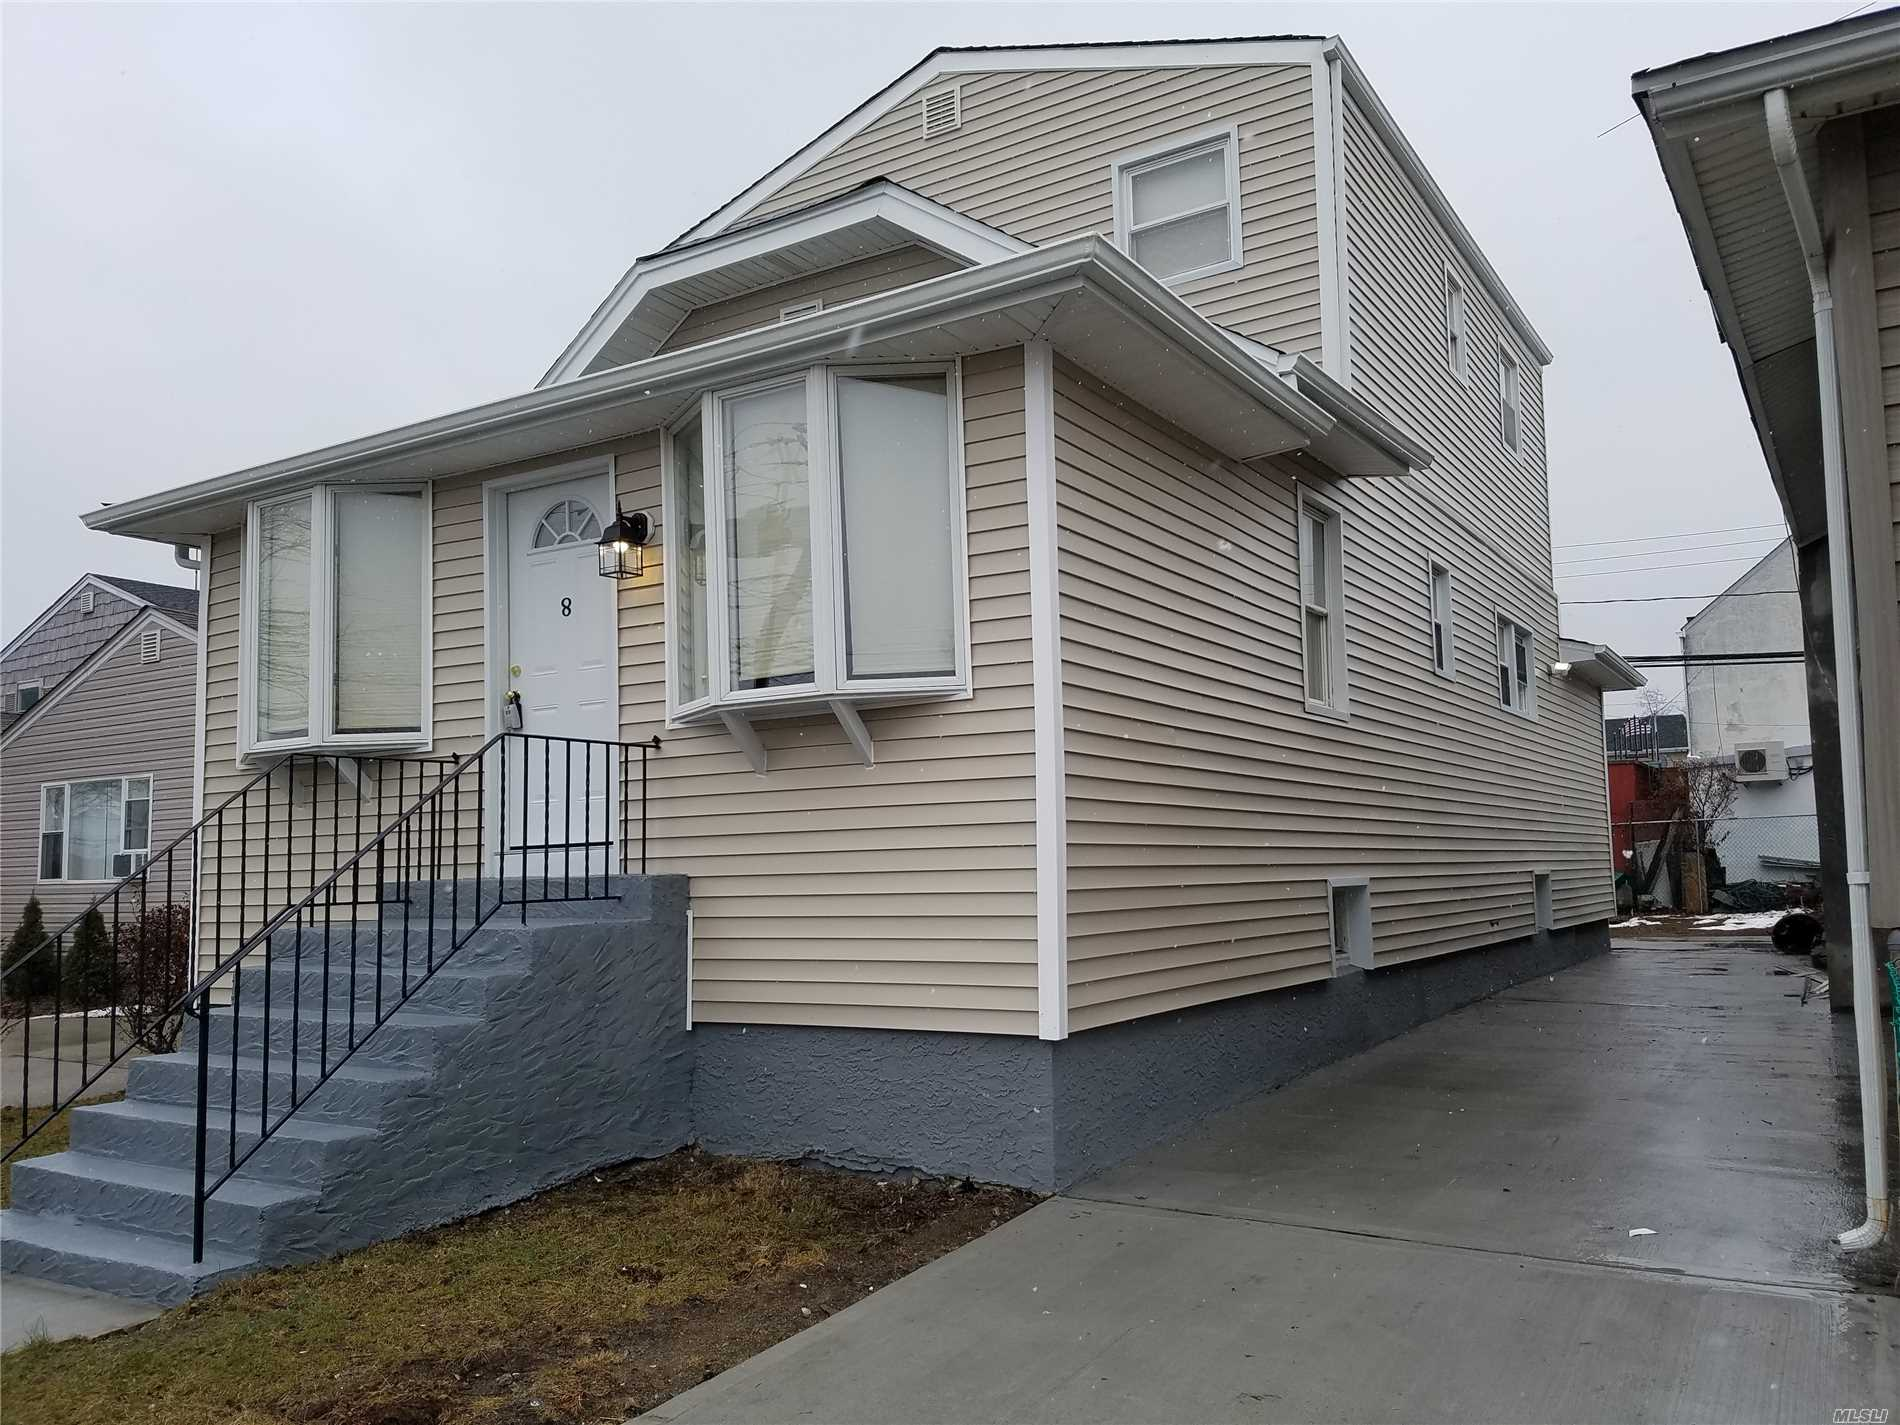 Totally Renovated 3 Bedrooms, 2 Full Bathrooms Colonial, All New Stanley Steel Appliances, Walking Distance To Train Station, Low Taxes, Great Location